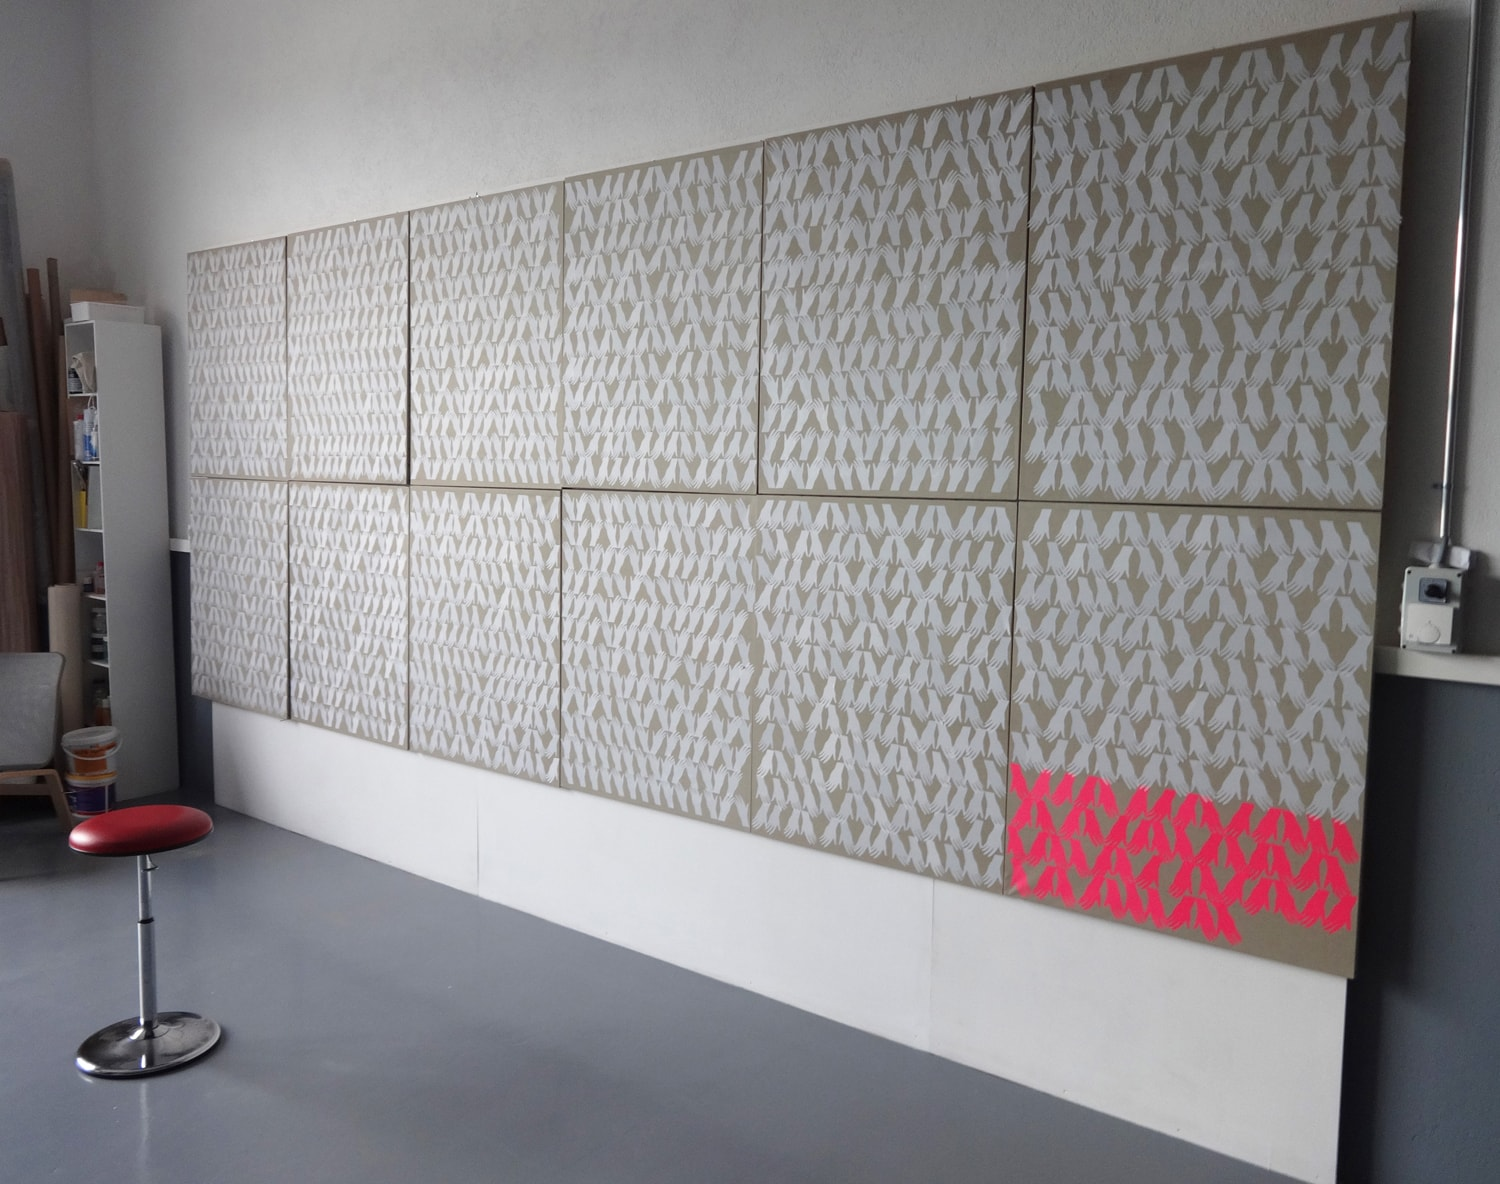 Calendar - Cut outs on canvas - 480 x 200 cm - 2012